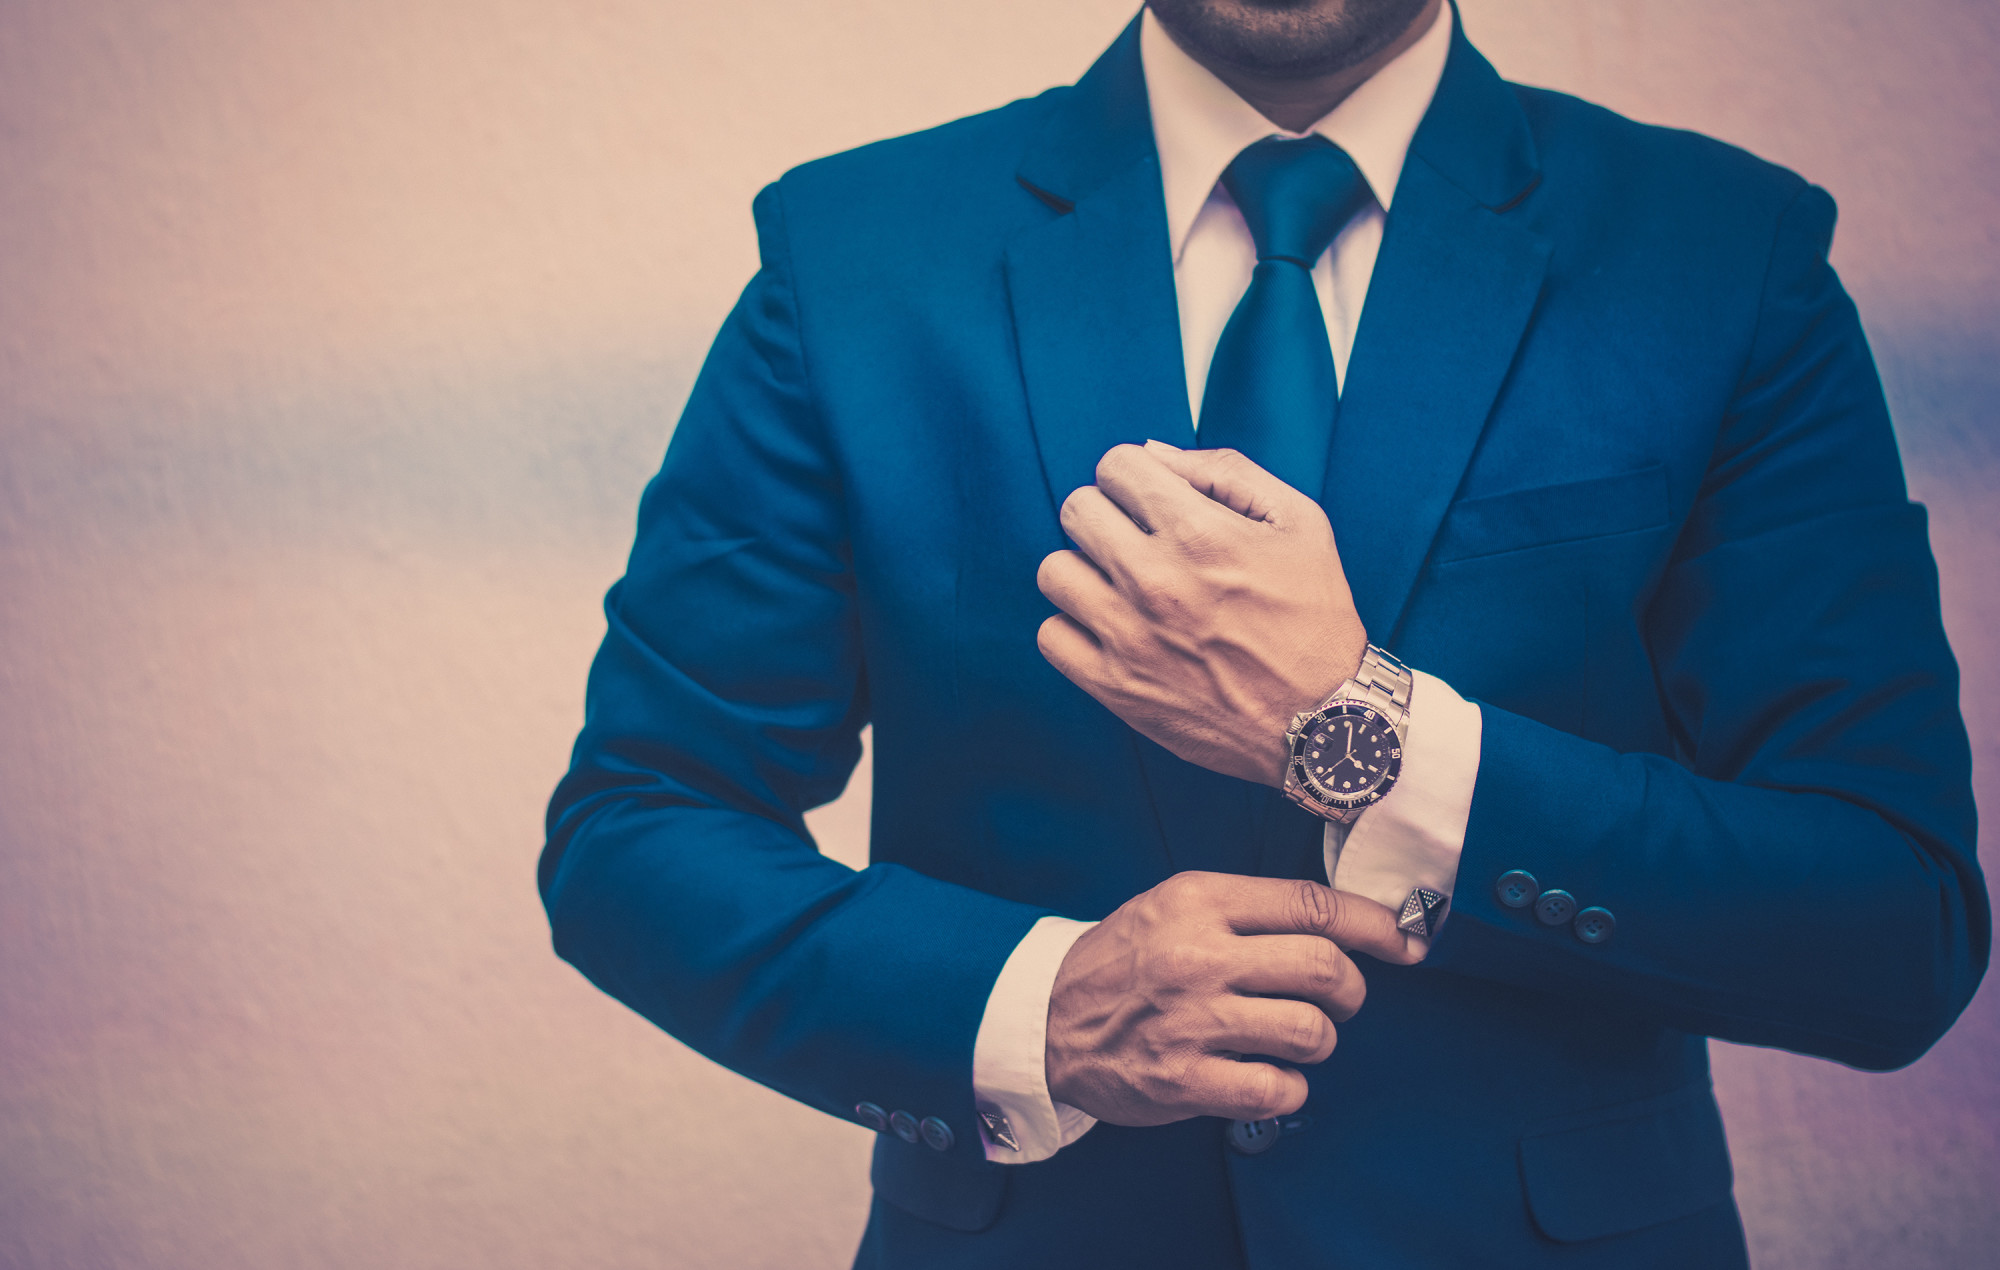 How to Look Great Wearing a Suit